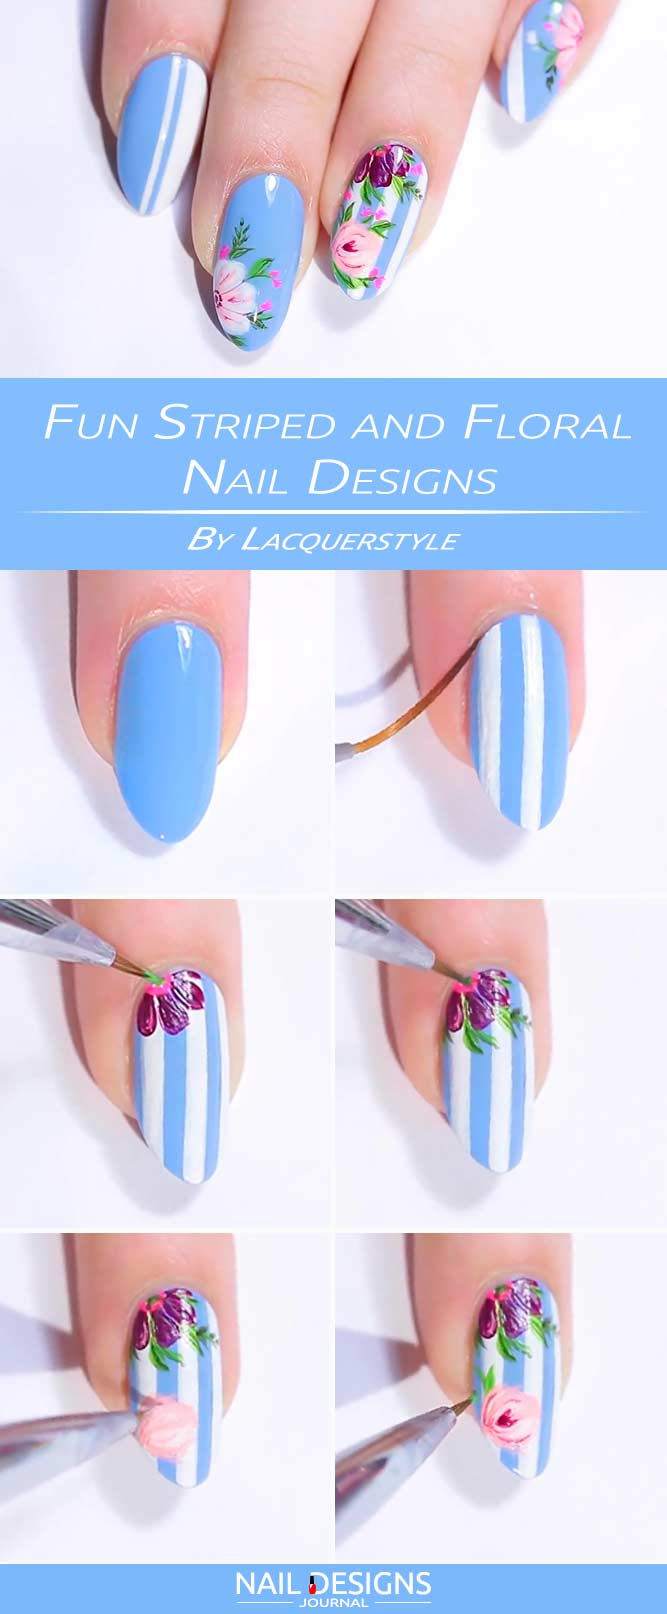 Fun Nail Designs at Home | NailDesignsJournal.com